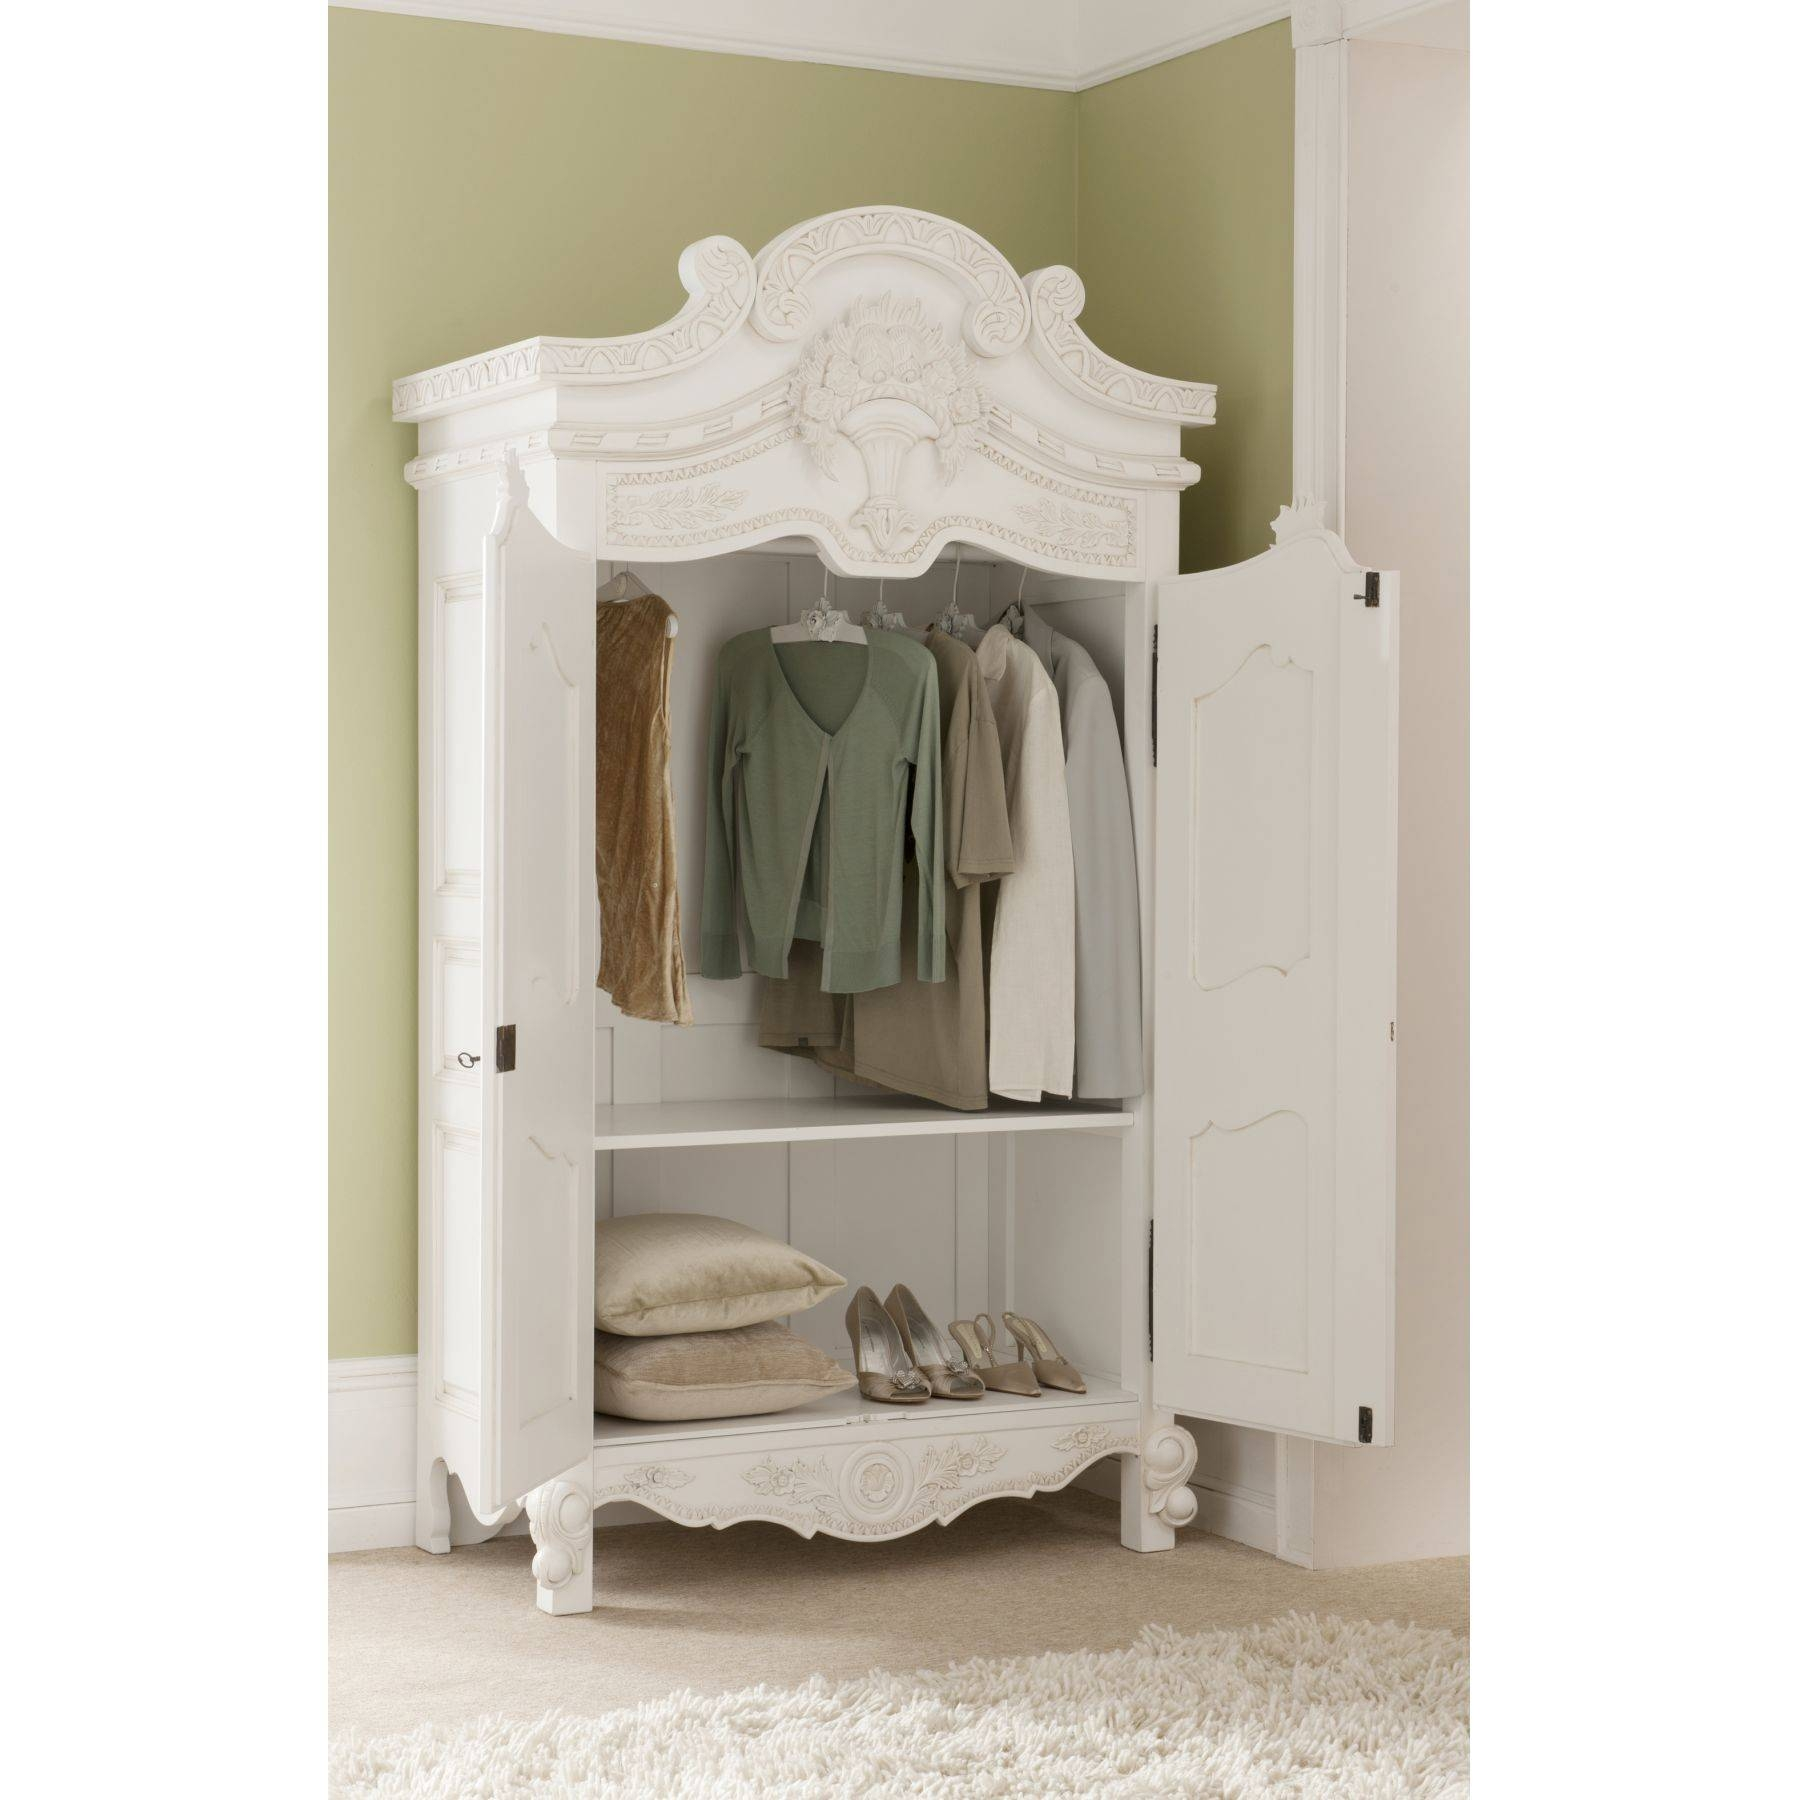 Rococo Antique French Wardrobe A Stunning Addition To Our Shabby within White Wardrobes French Style (Image 13 of 15)